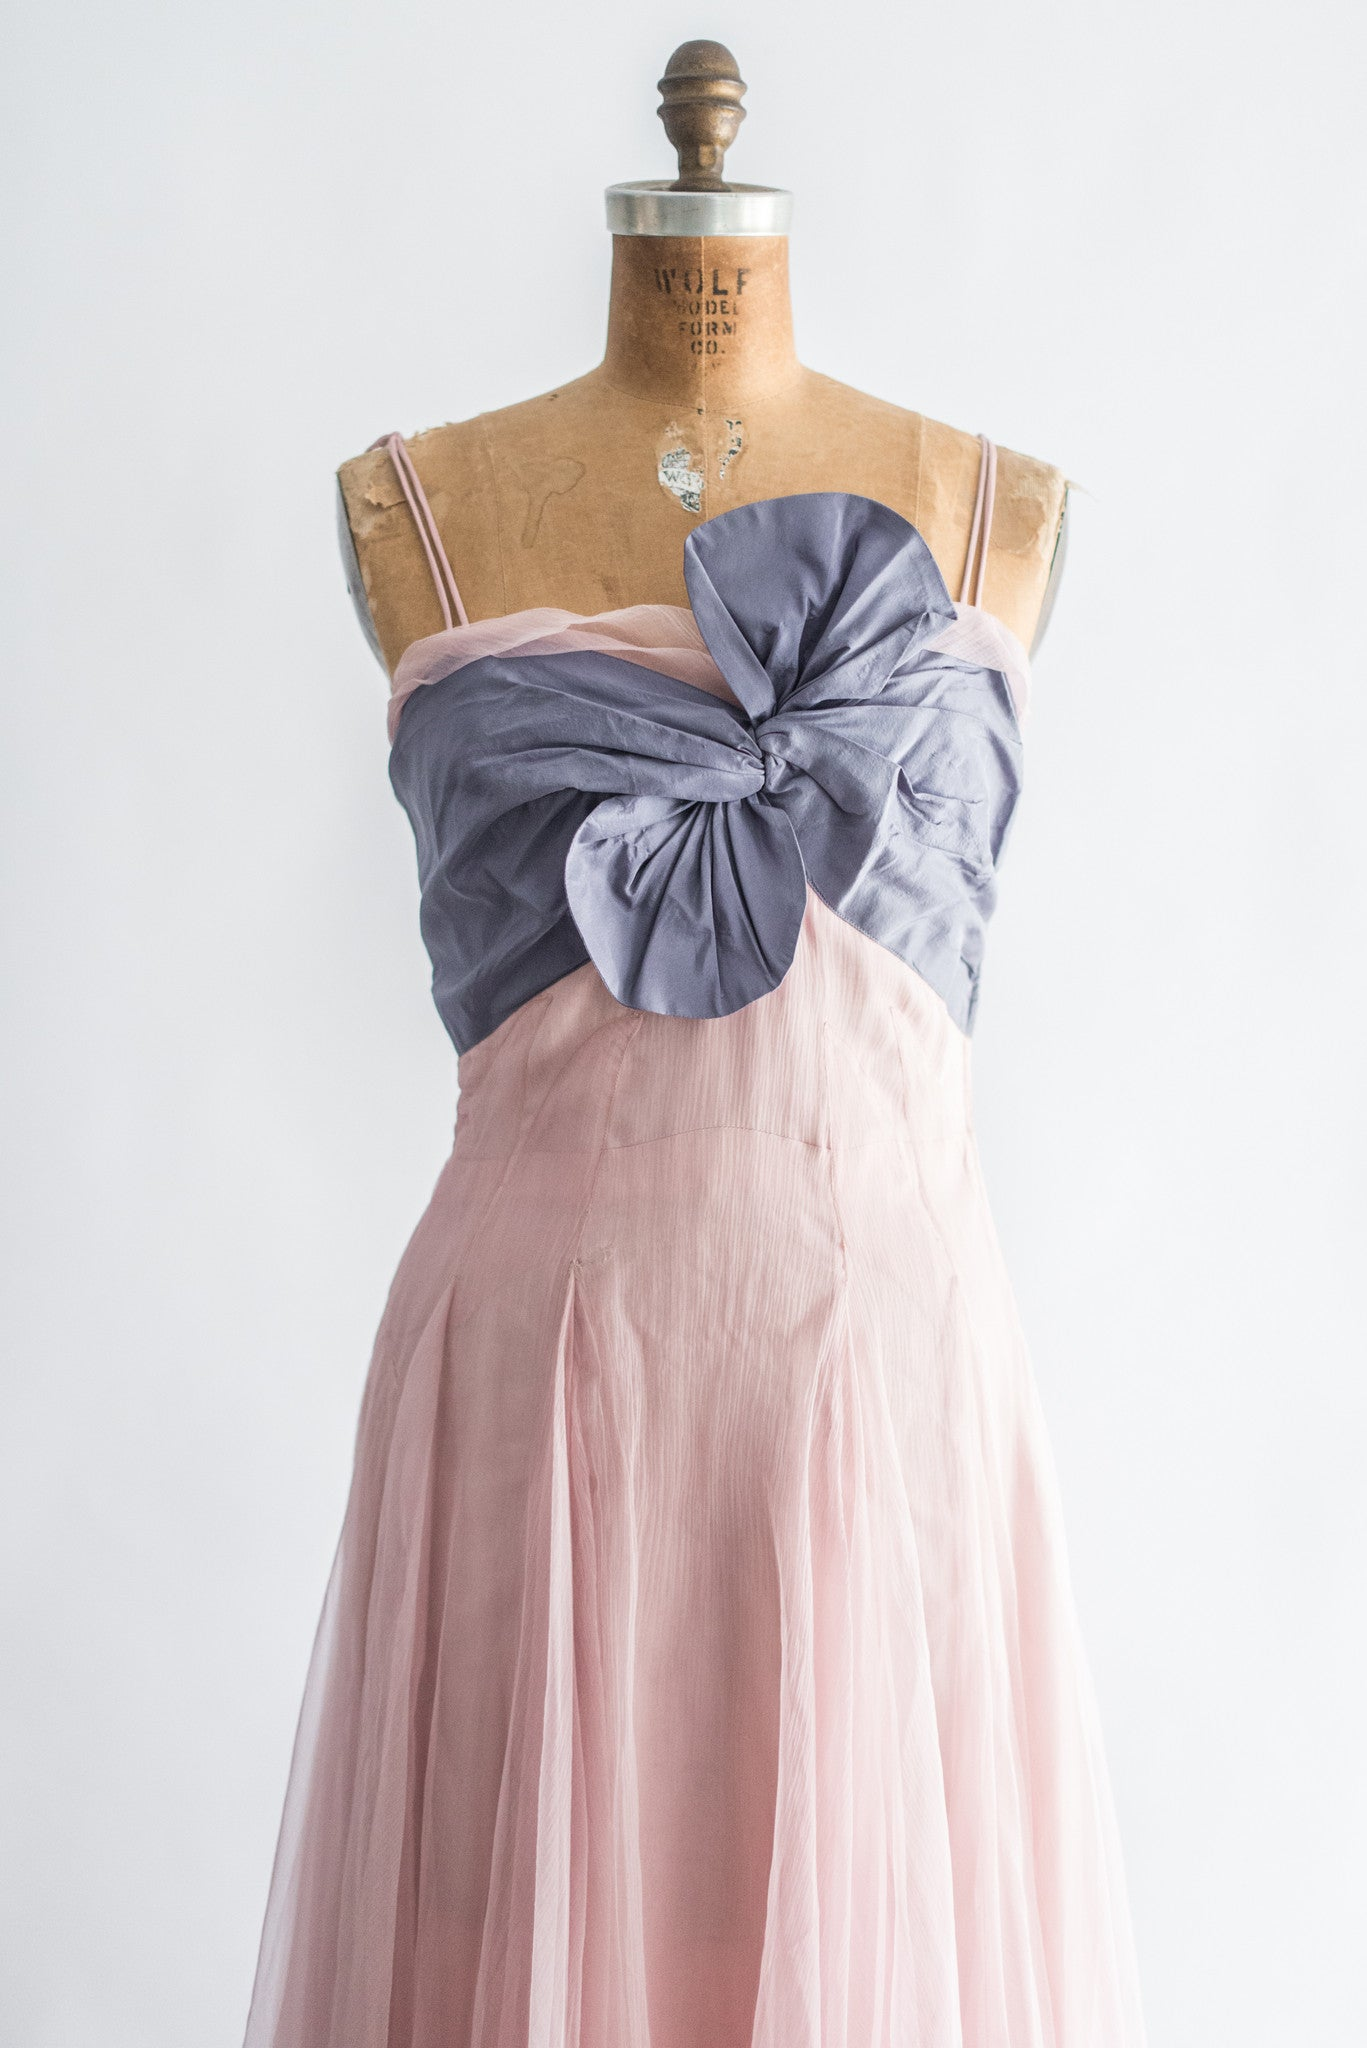 Direct Import Home Decor 1950s Pink Silk Layered Gown S G O S S A M E R